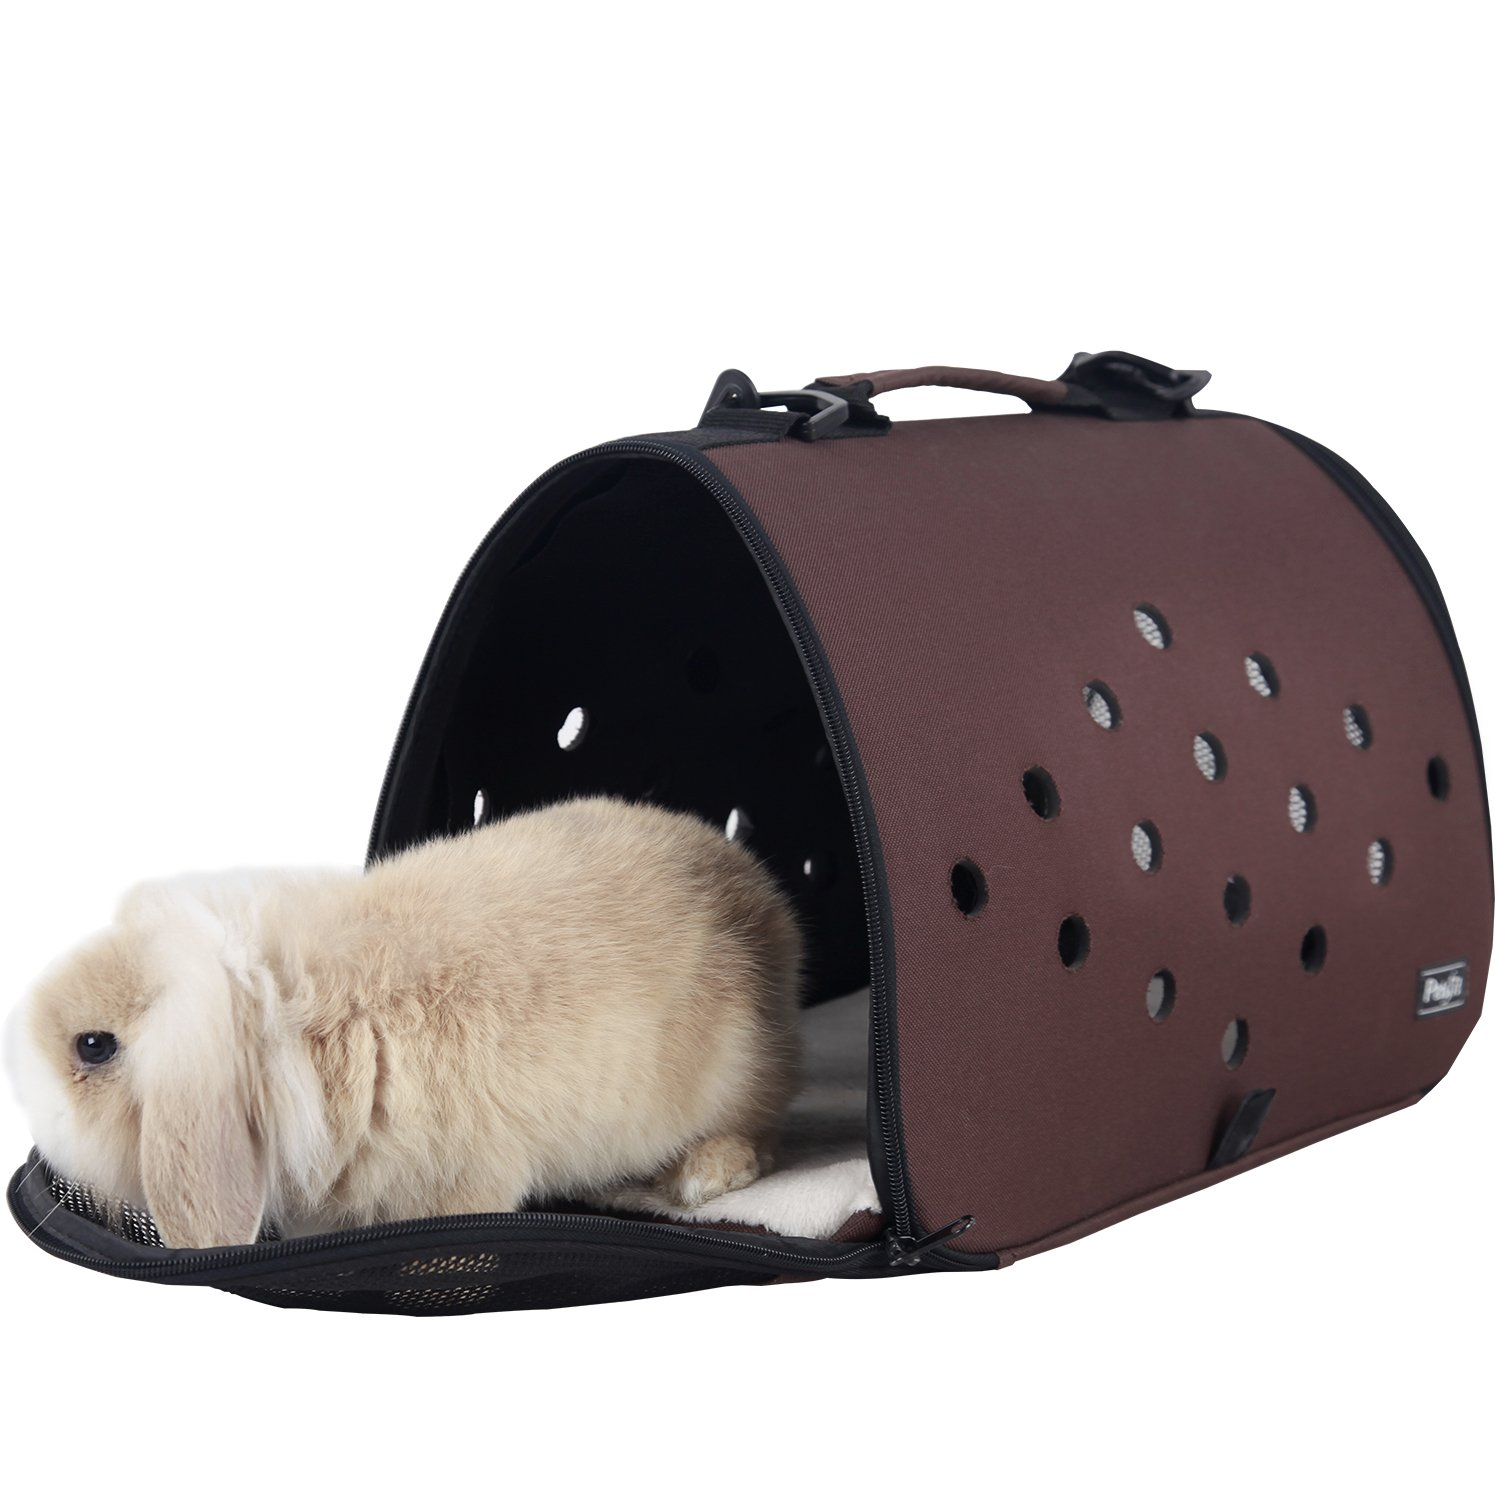 Petsfit 16 X 9 X 9 Inches Pet Carrier EVA, Soft-sided Pet Carrier, Cat Carrier,Ferret Carrier,Bunny Carrier for Small Pet Only